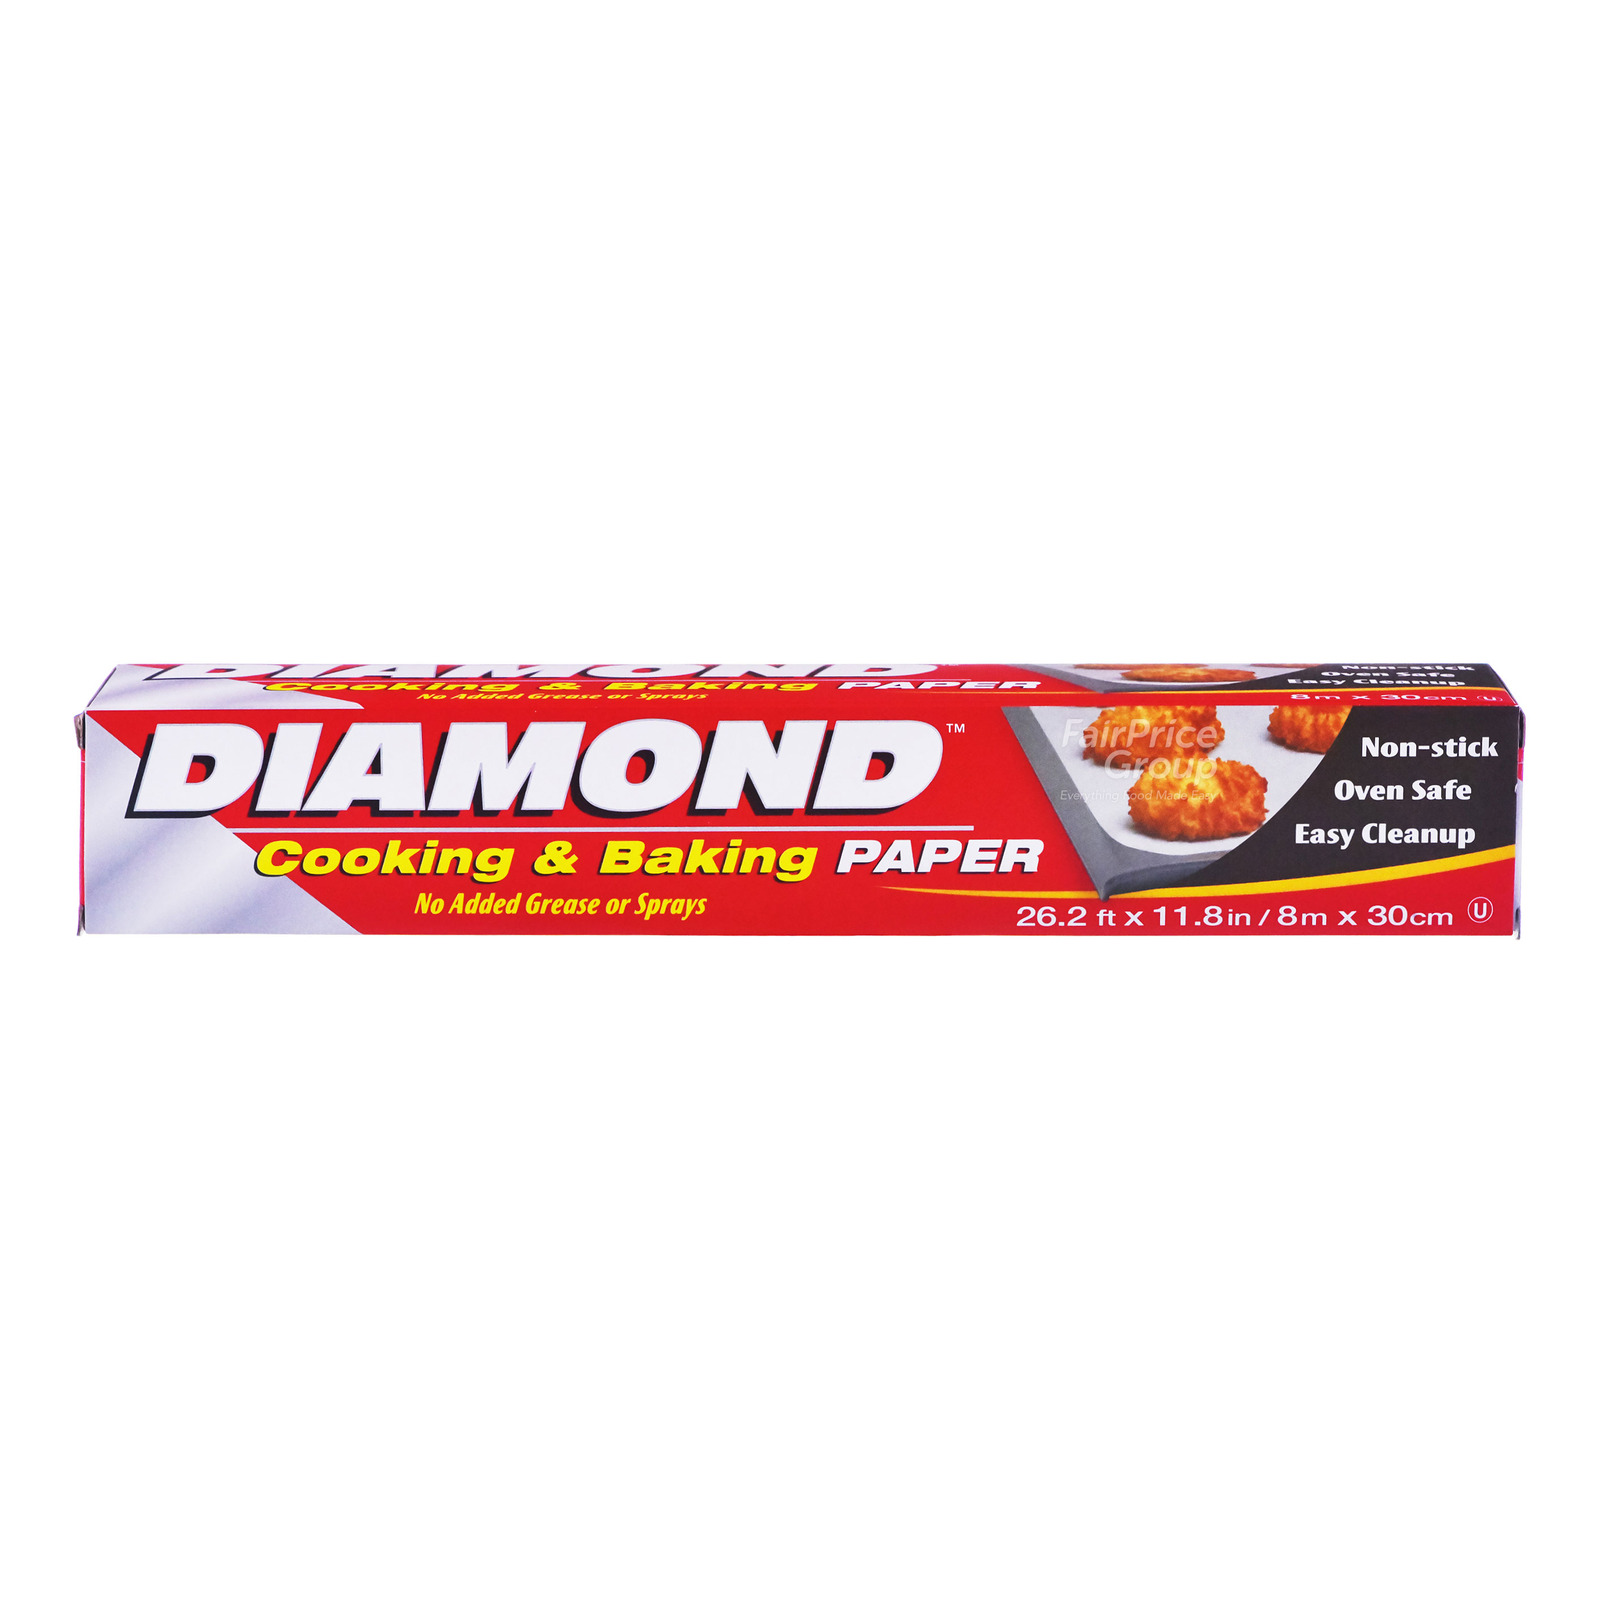 Diamond Cooking & Baking Paper (8m)